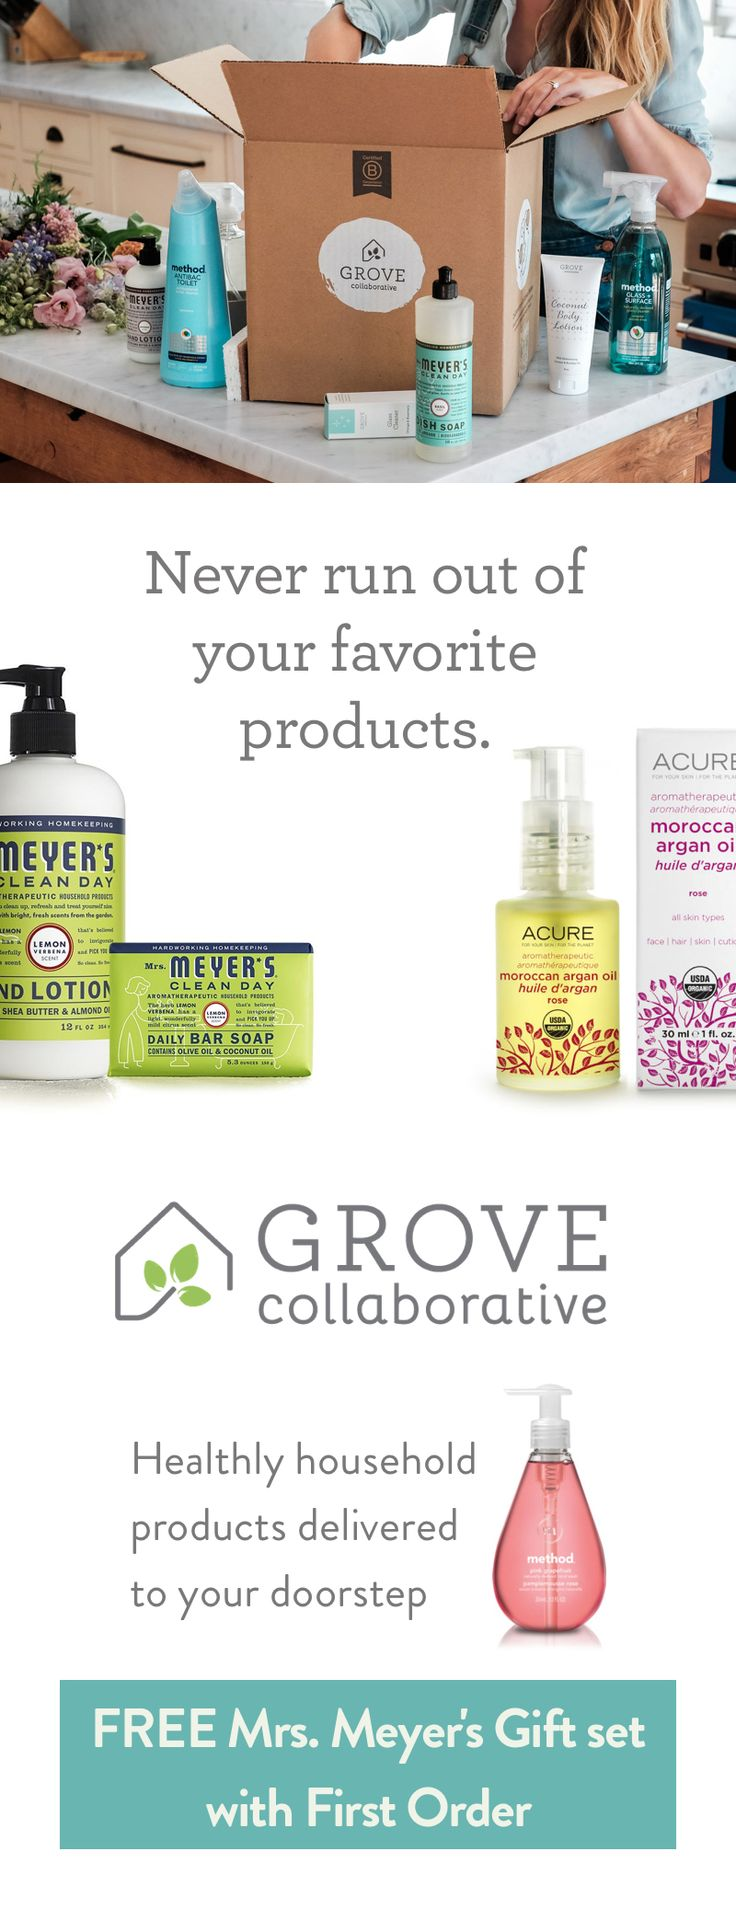 Sign up and discover the best natural household and personal products   https://www.grove.co/s/pinmmcdtrio/?offer=pinmmcdtrio&flow=hiw-spray&utm_medium=social&utm_source=pinprospect&utm_campaign=pinterest&utm_content=lifestyle&utm_term=57.3p